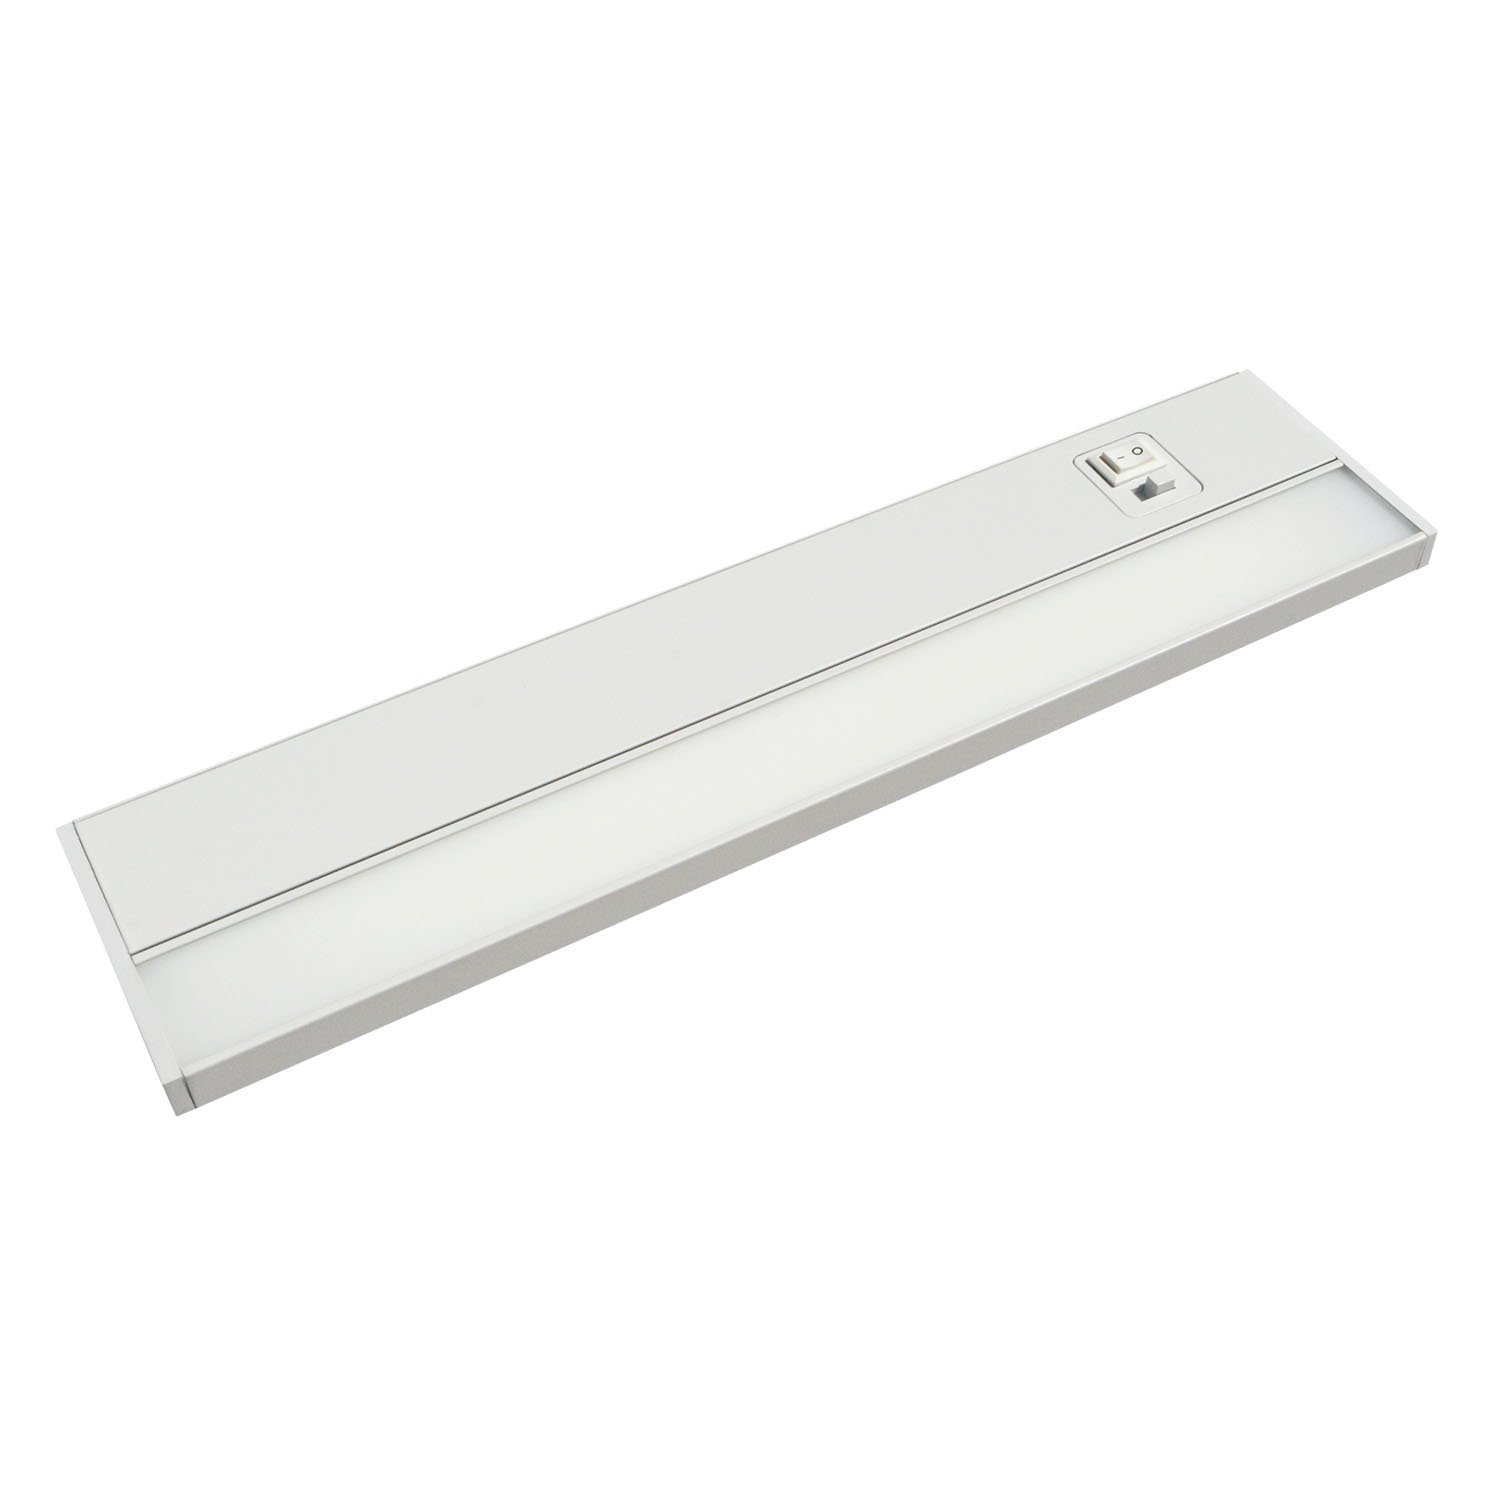 JULLISON 24 Inch LED Under Cabinet Light, Under Counter Light, Plug-in or Hardwired, 120VAC, 14W, CRI90, 1050 Lumens, 3 Colors Changing, 2700K-3000K-4000K, Linkable, ETL Listed, Damp Location - White